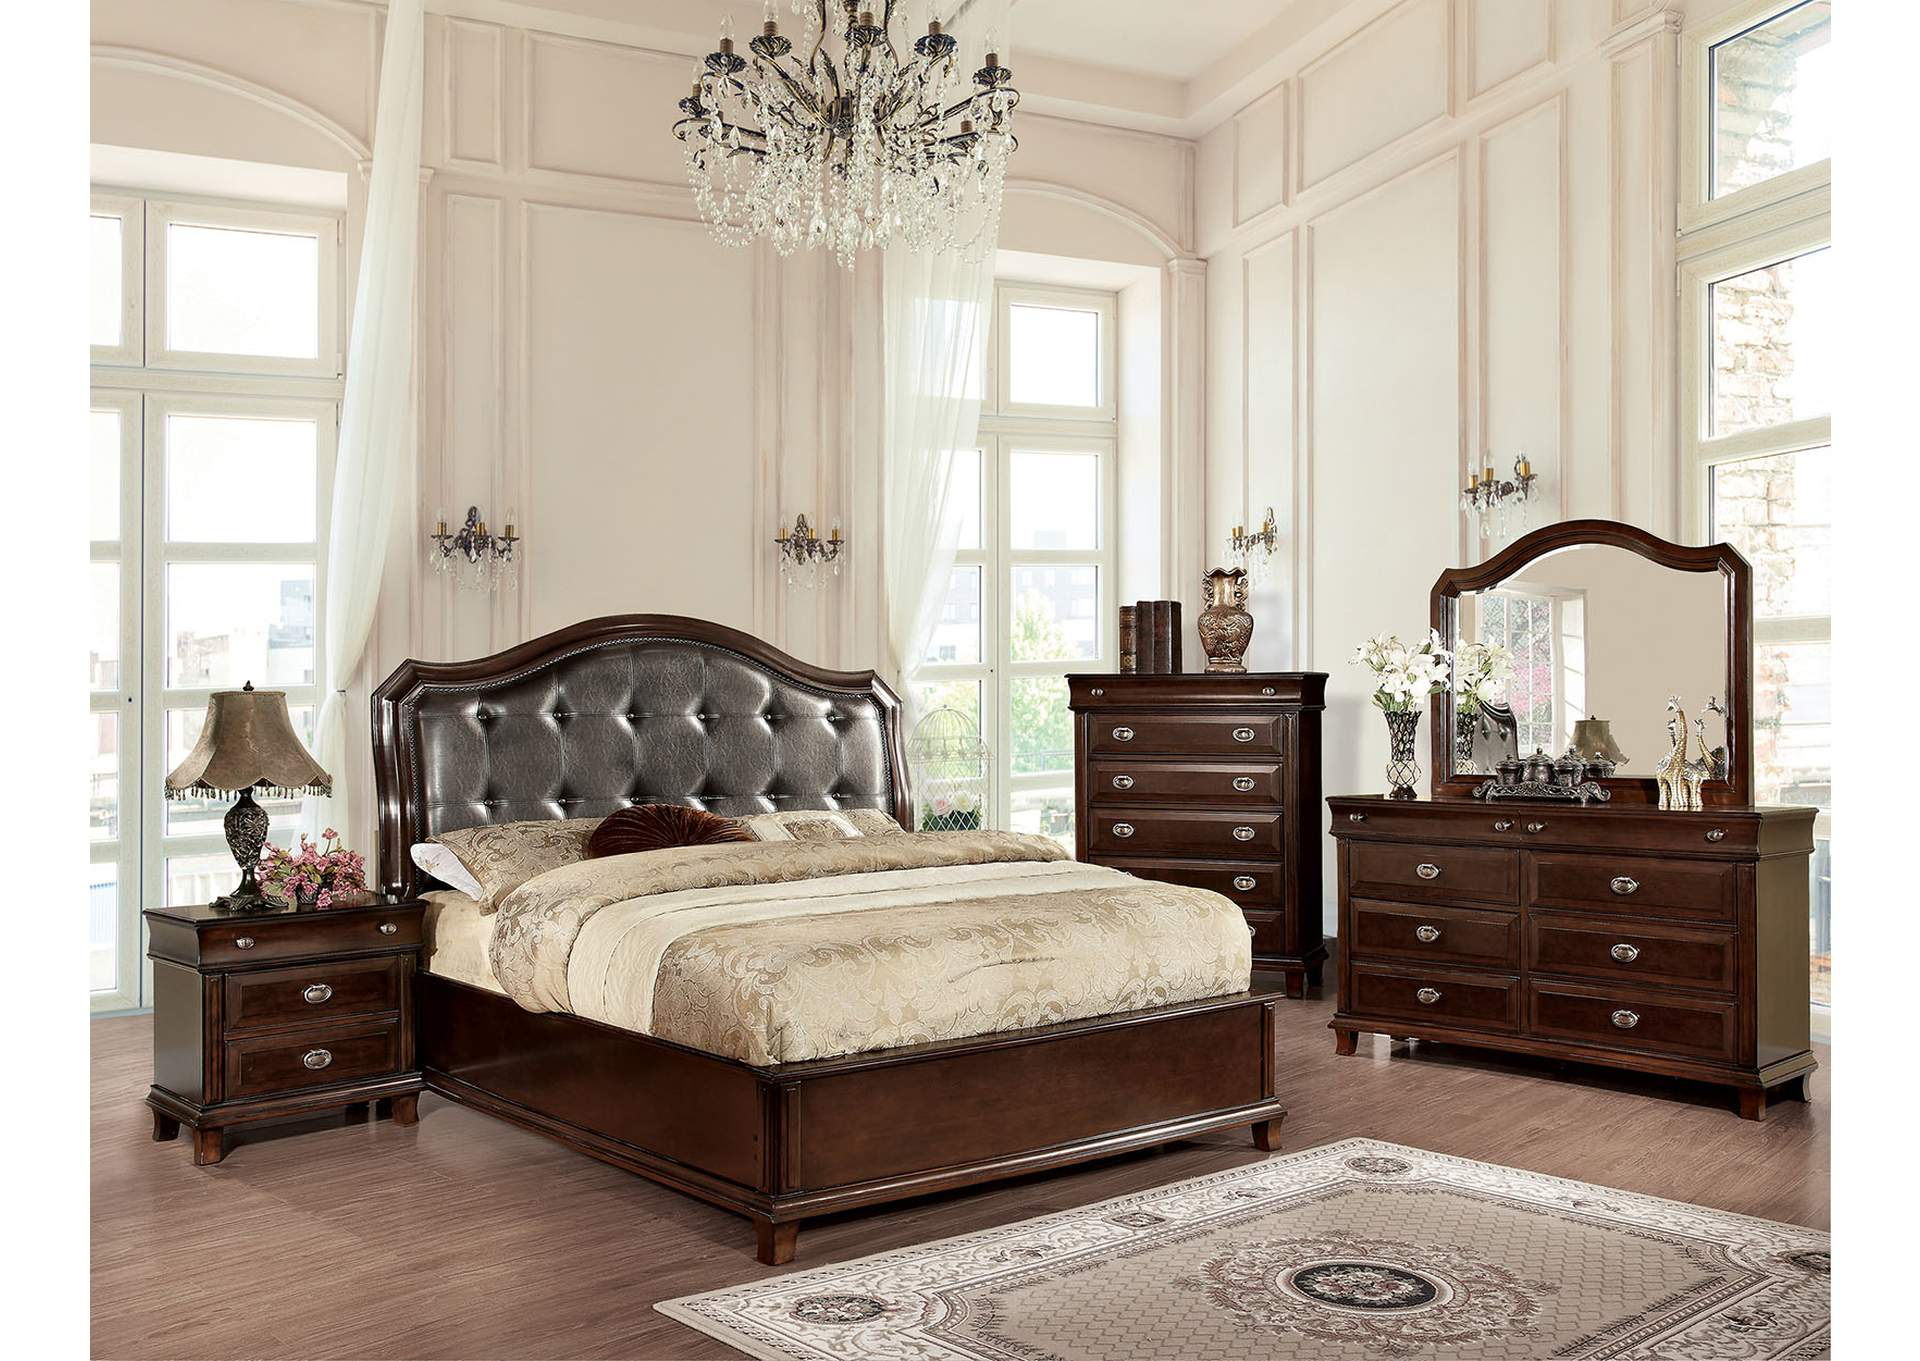 Arden Brown Cherry Upholstered Platform Queen Bed w/Dresser and Mirror,Furniture of America